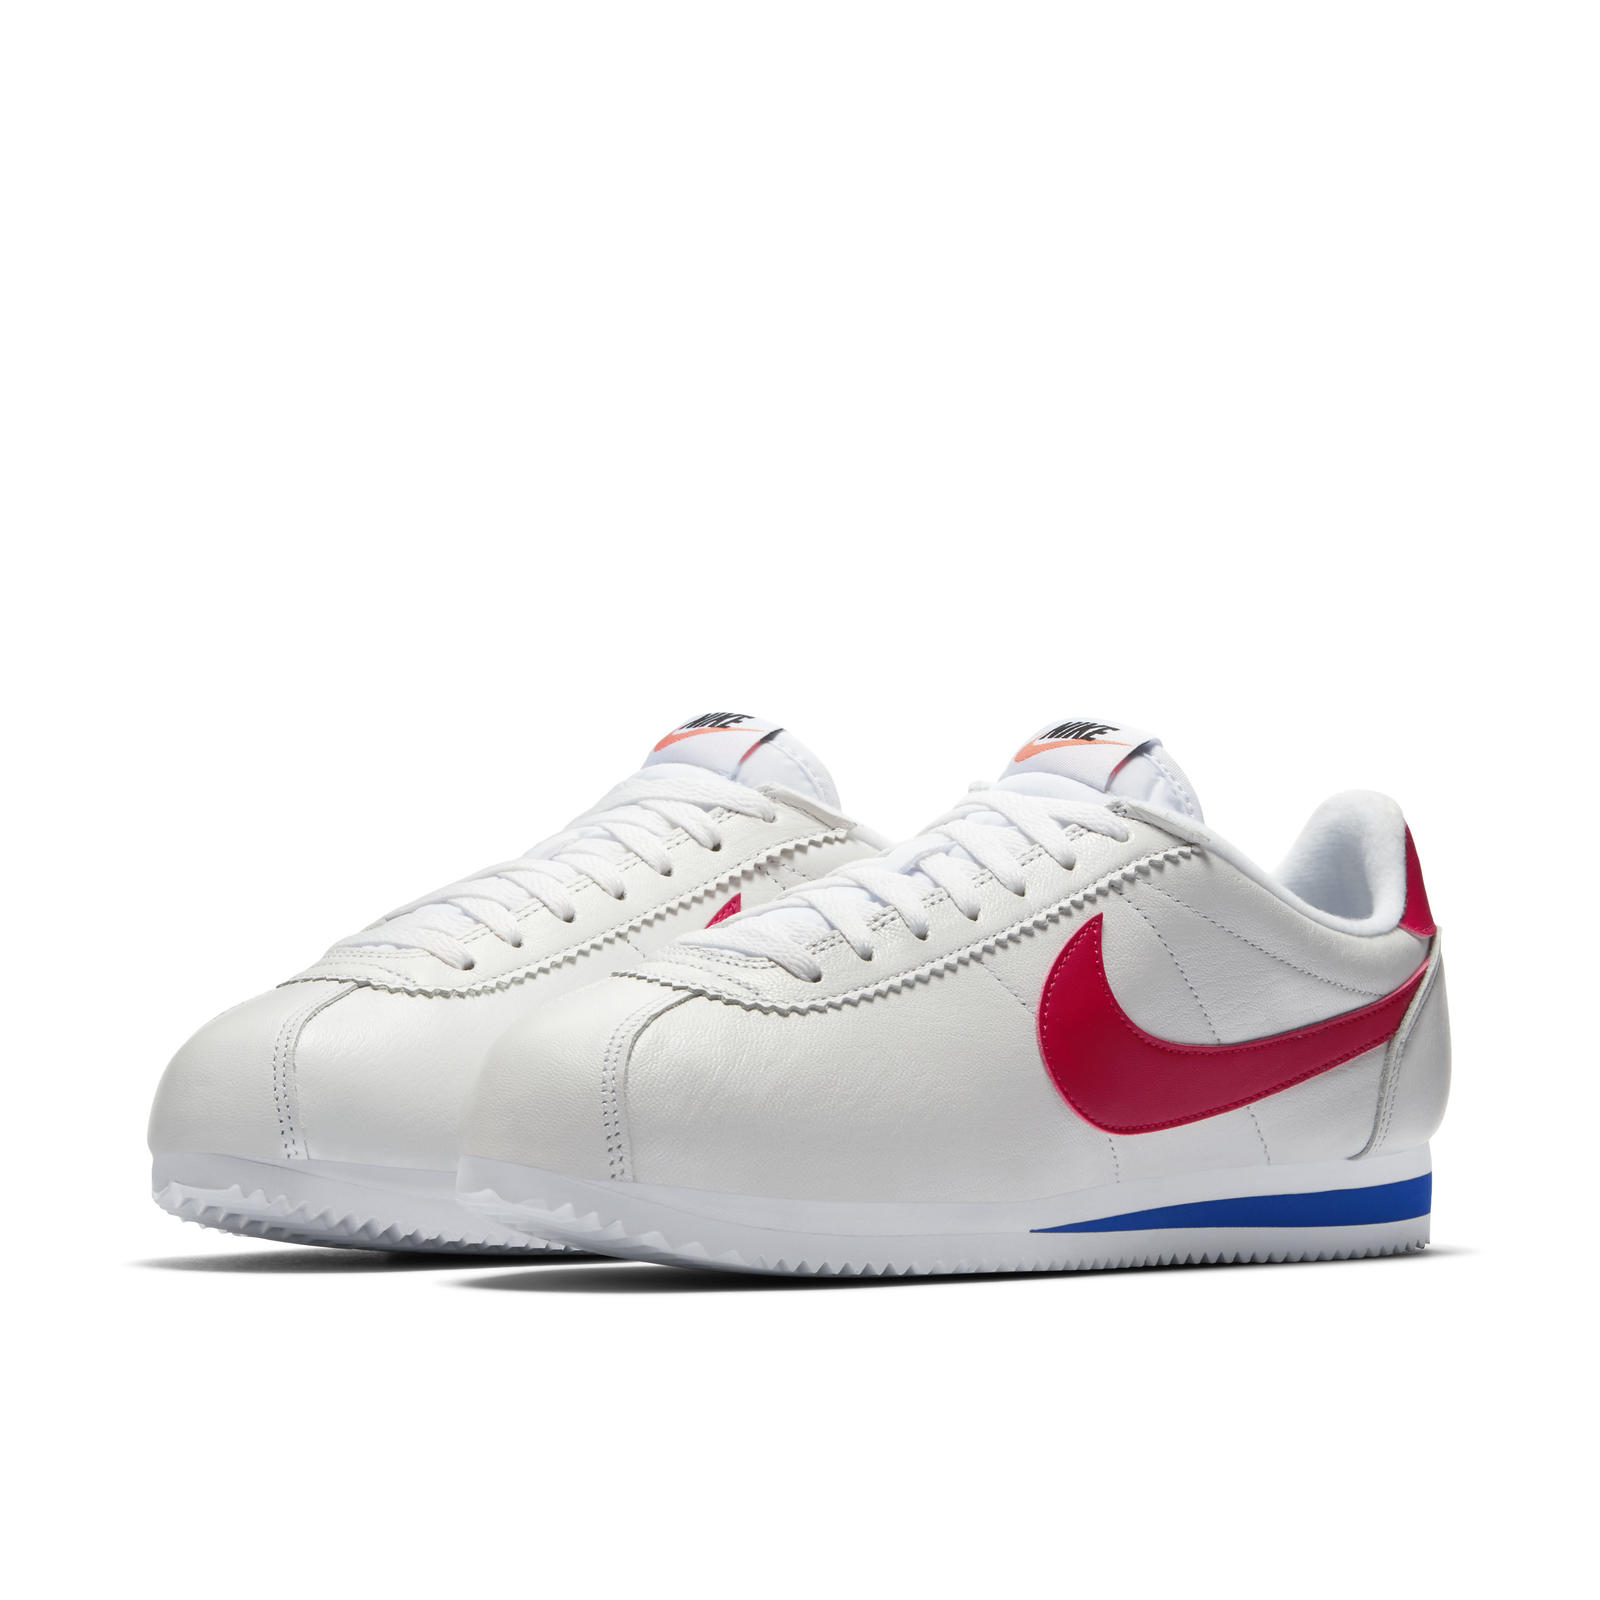 new style b7f9b a9744 The Nike Cortez, officially released in 1972, is many things: a shining  example of Nike co-founder Bill Bowerman's drive to better equipment for  runners, ...